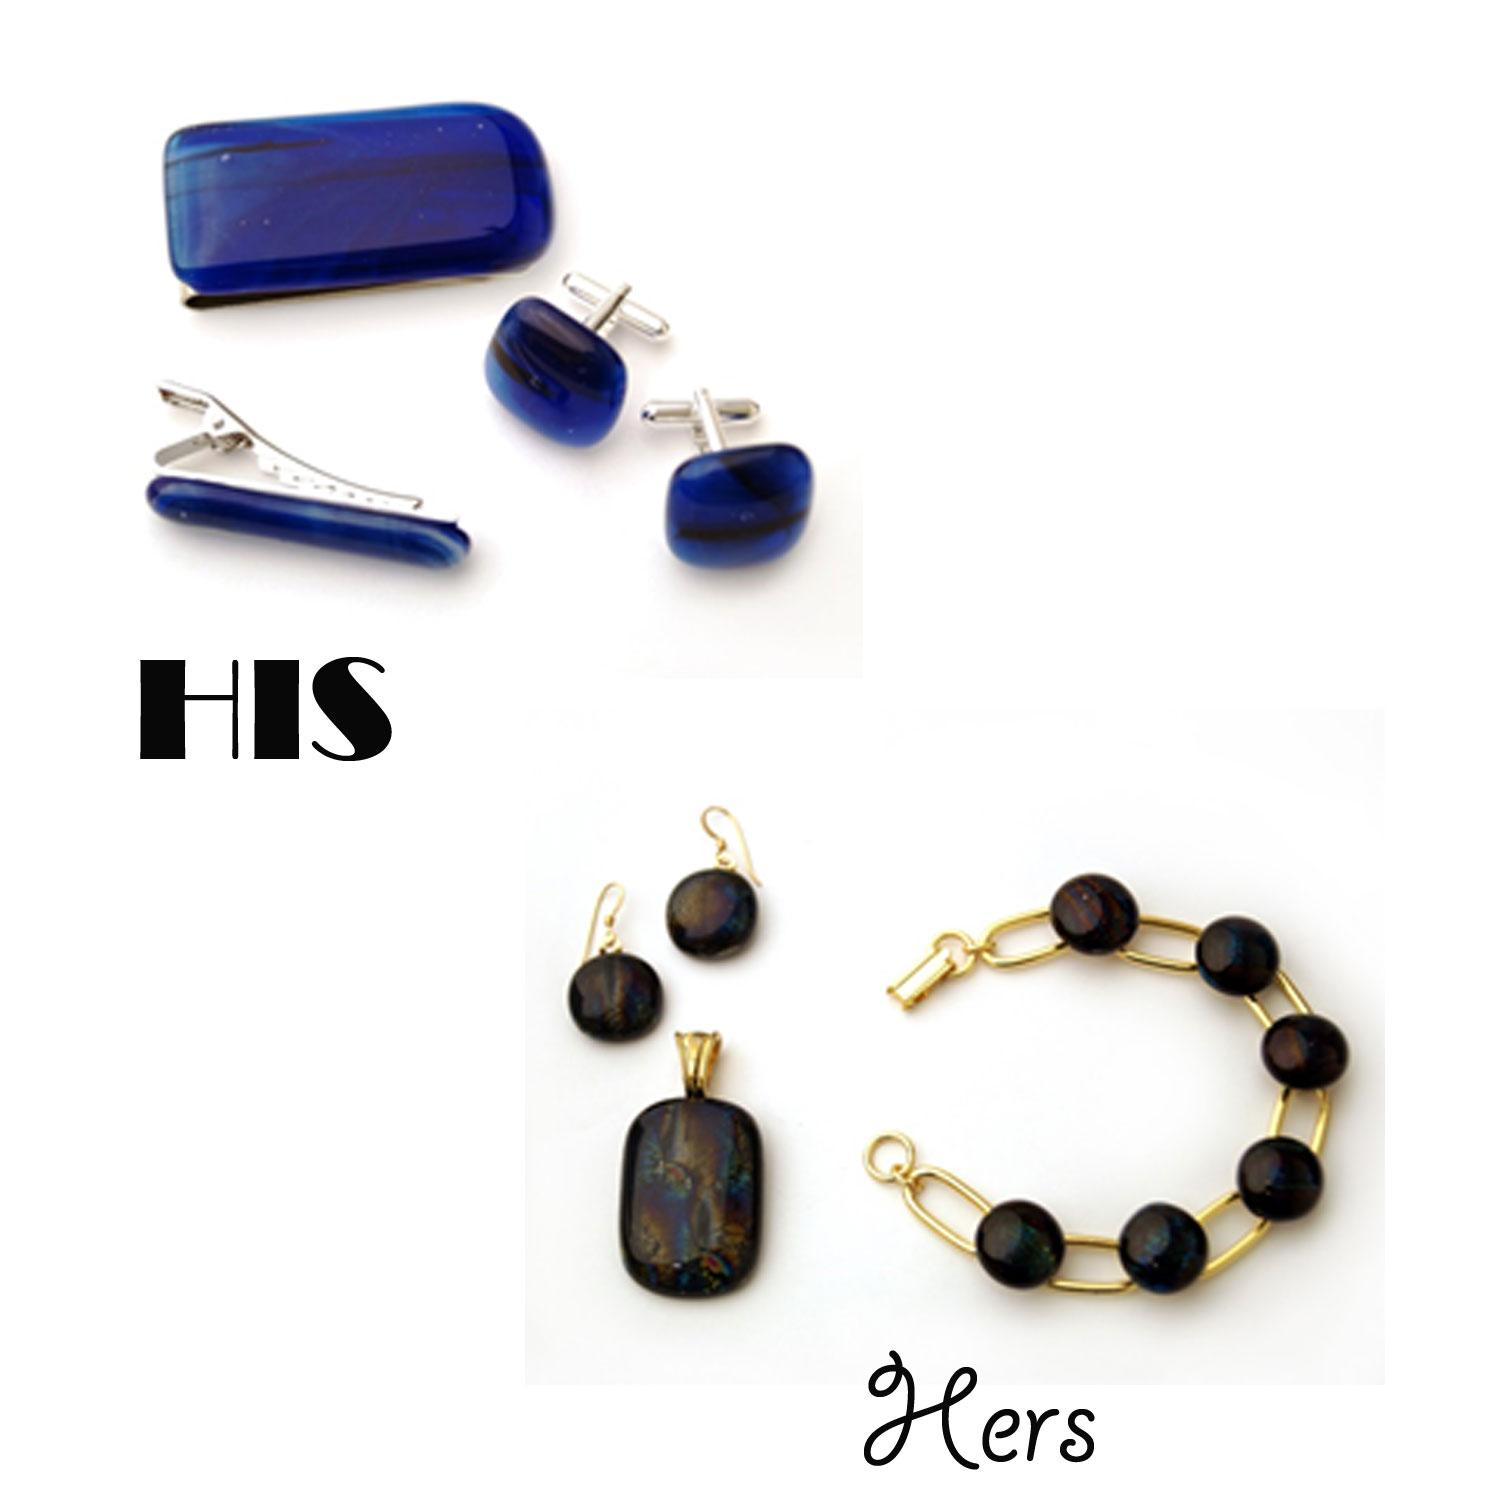 Free His and Hers Accessory Sets Project Guide